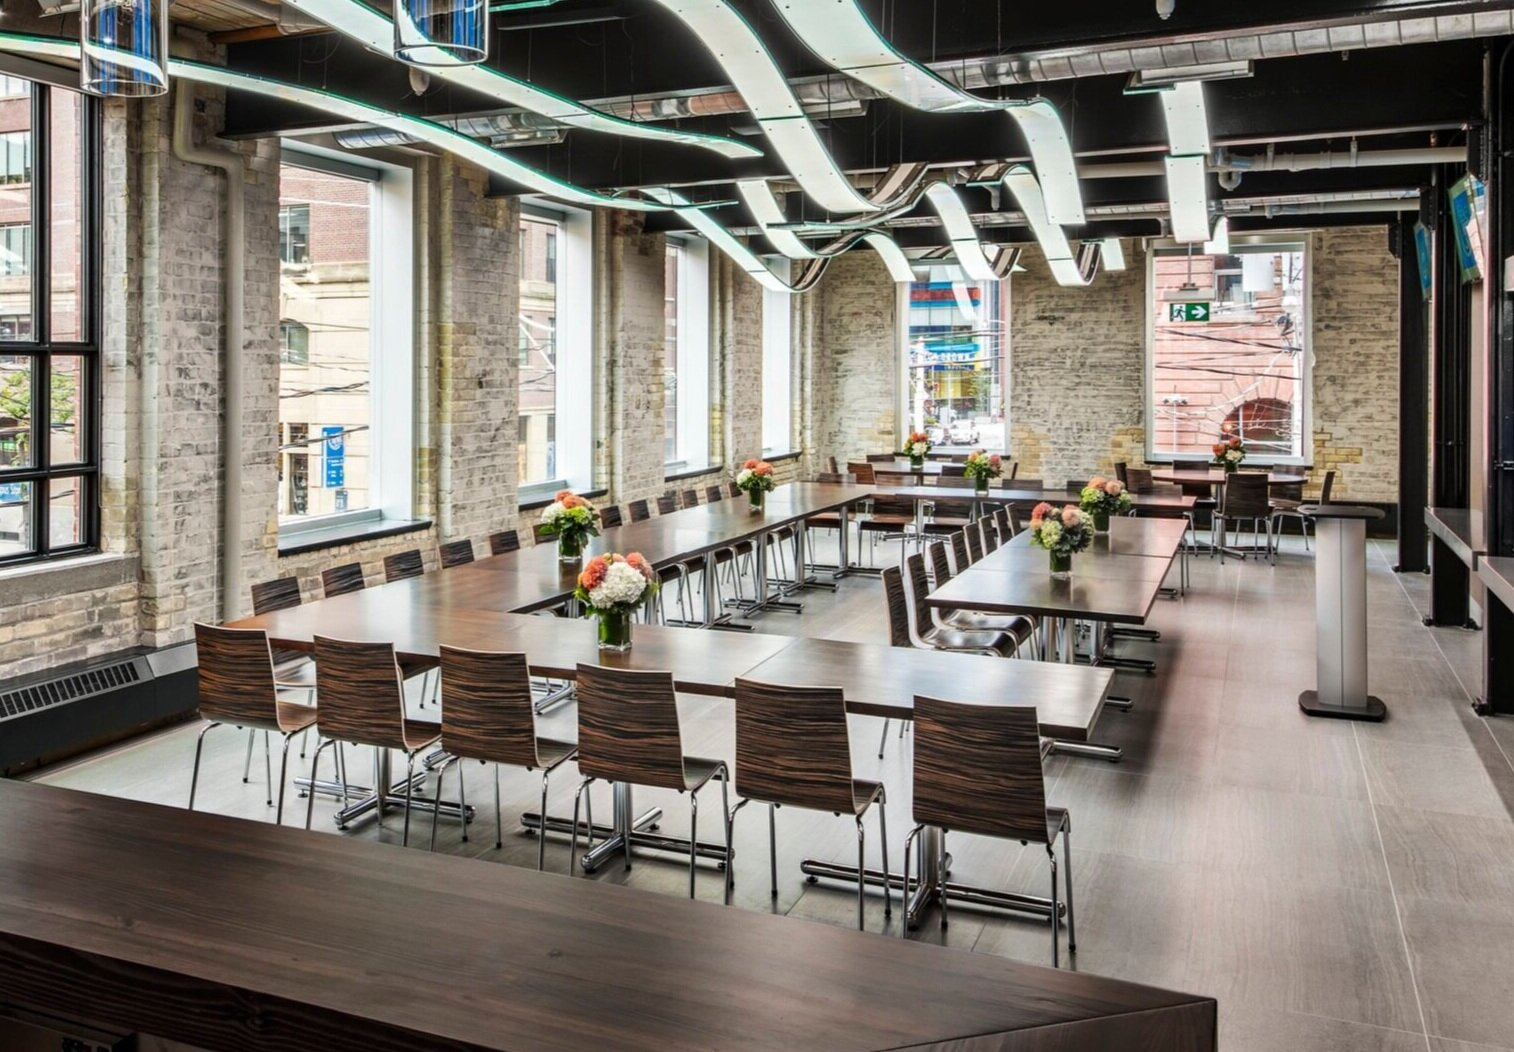 The Event Space at 215 King Street East, Toronto - one of the facilities at the Centre for Hospitality & Culinary Arts at George Brown College